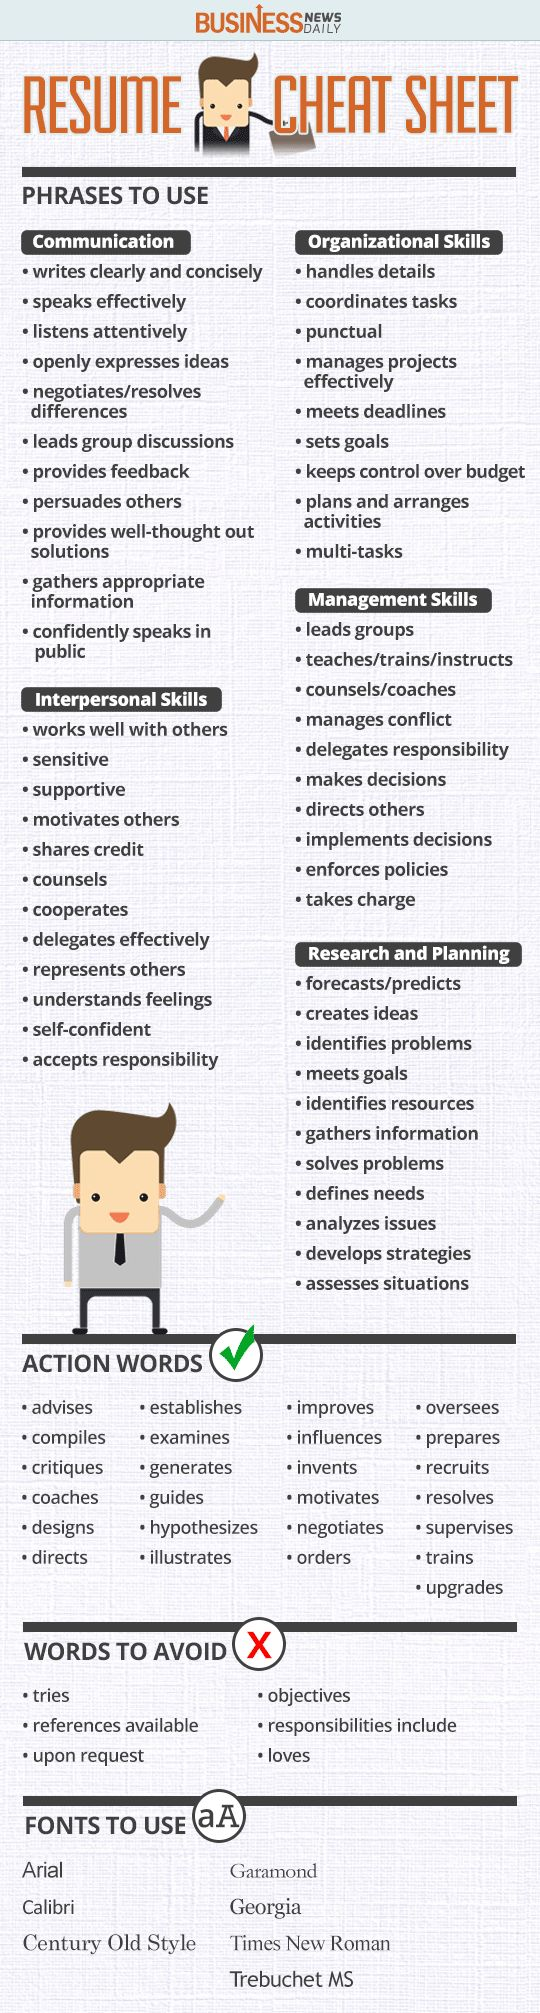 Opposenewapstandardsus  Terrific  Ideas About Resume On Pinterest  Cv Format Resume Cv And  With Lovable Resume Cheat Sheet Infographic Andrews Almost Done With A Complete Unit On Employment Which With Astounding Sample Electrician Resume Also Account Manager Resume Examples In Addition Esthetician Resume Objective And High School Student Resume Samples As Well As Nurse Aide Resume Additionally Sample Chef Resume From Pinterestcom With Opposenewapstandardsus  Lovable  Ideas About Resume On Pinterest  Cv Format Resume Cv And  With Astounding Resume Cheat Sheet Infographic Andrews Almost Done With A Complete Unit On Employment Which And Terrific Sample Electrician Resume Also Account Manager Resume Examples In Addition Esthetician Resume Objective From Pinterestcom